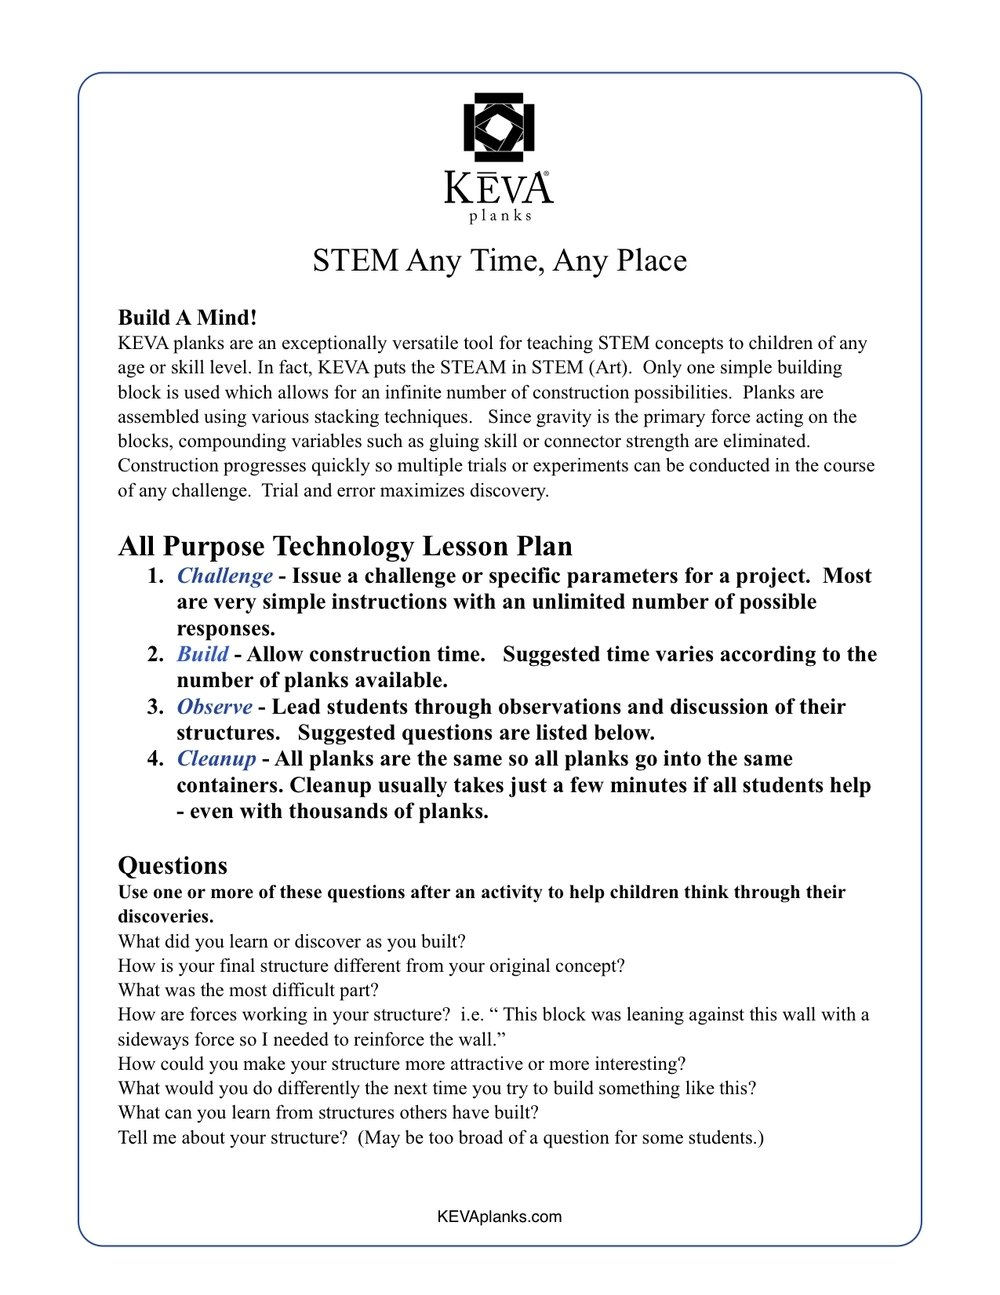 10 Fantastic Lesson Plan Ideas For Elementary lesson plans challenges games activities keva planks